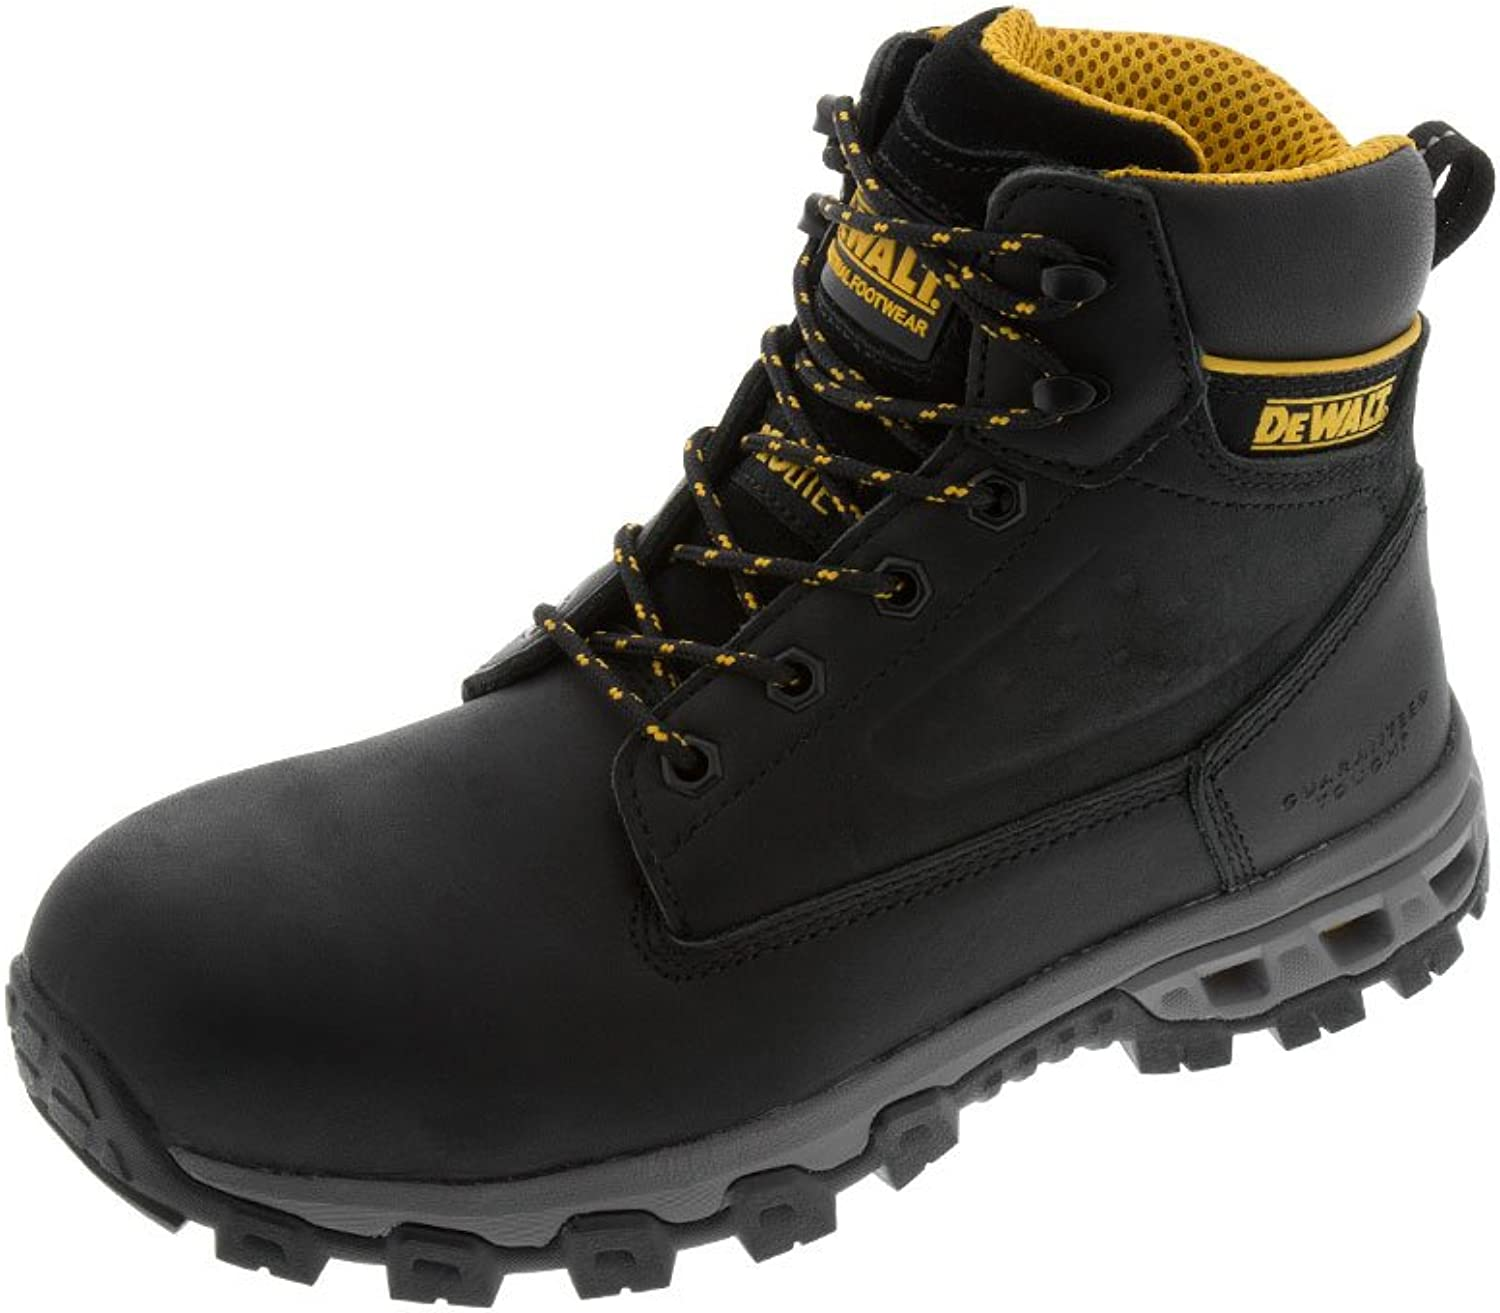 Dewalt Men's Halogen Aluminum Toe Full Grain Leather Work Boot, Style NO. DXWP10008